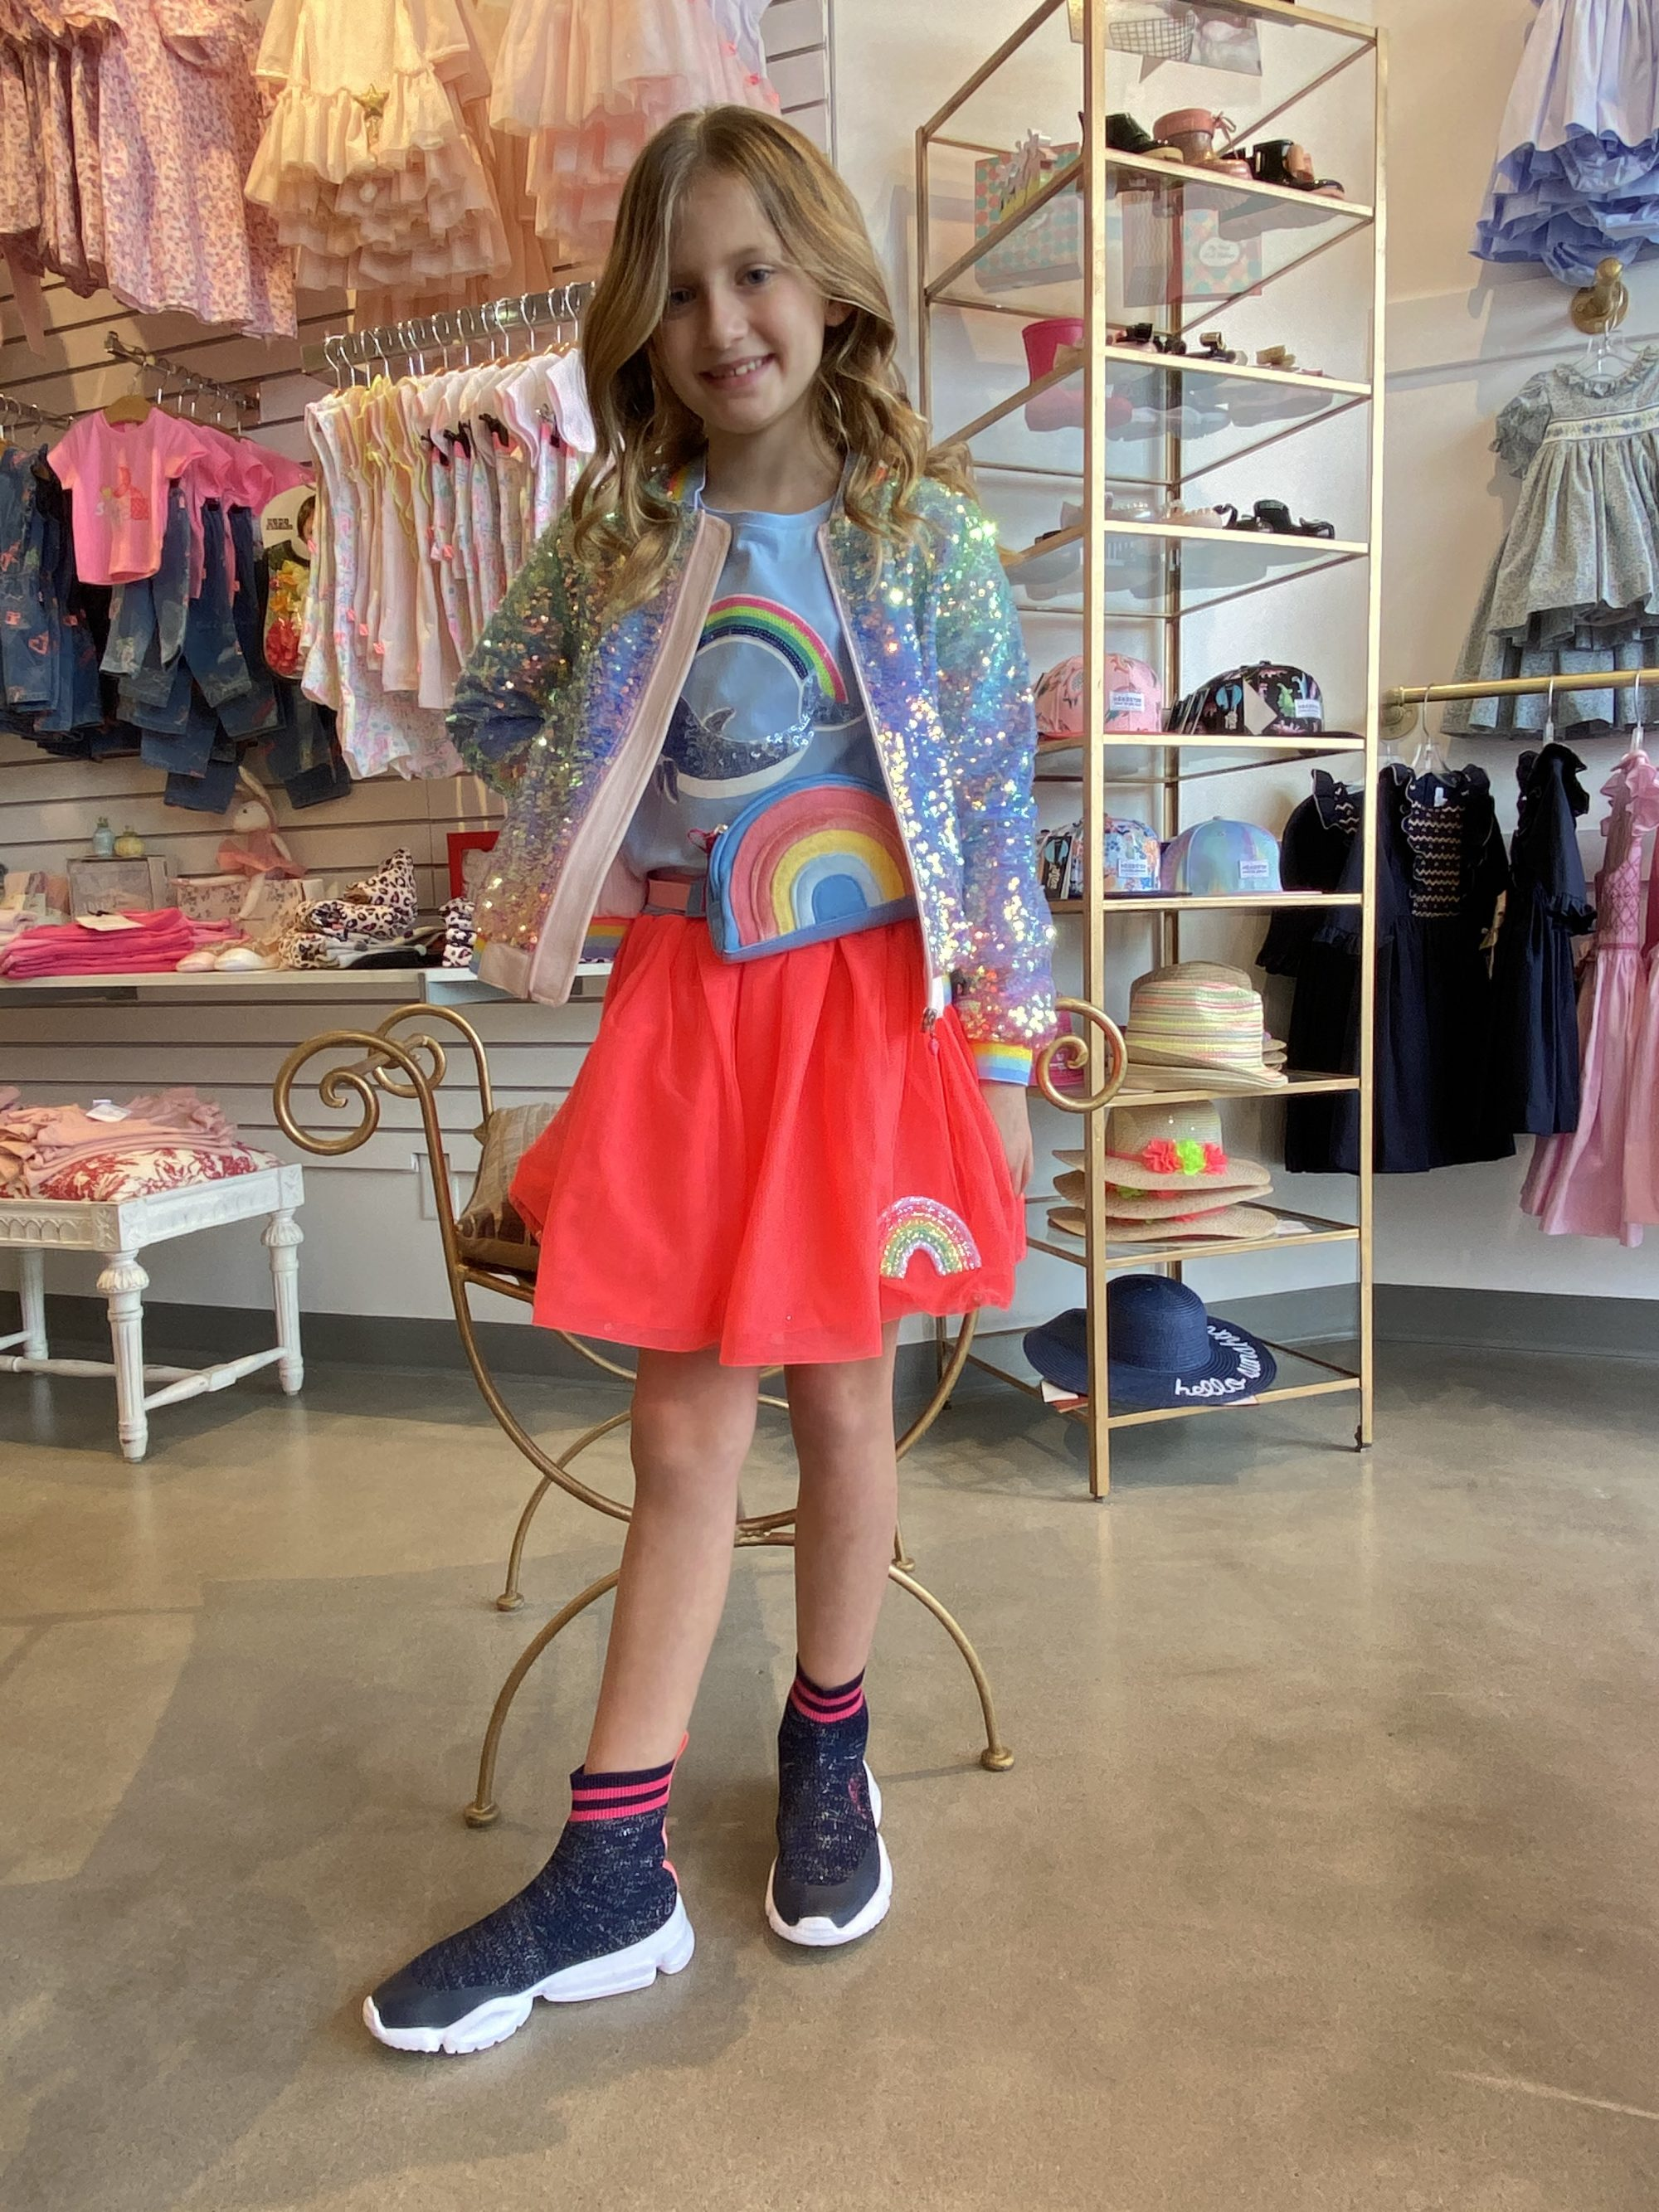 A girl wearing an outfit designed by Billieblush based in France